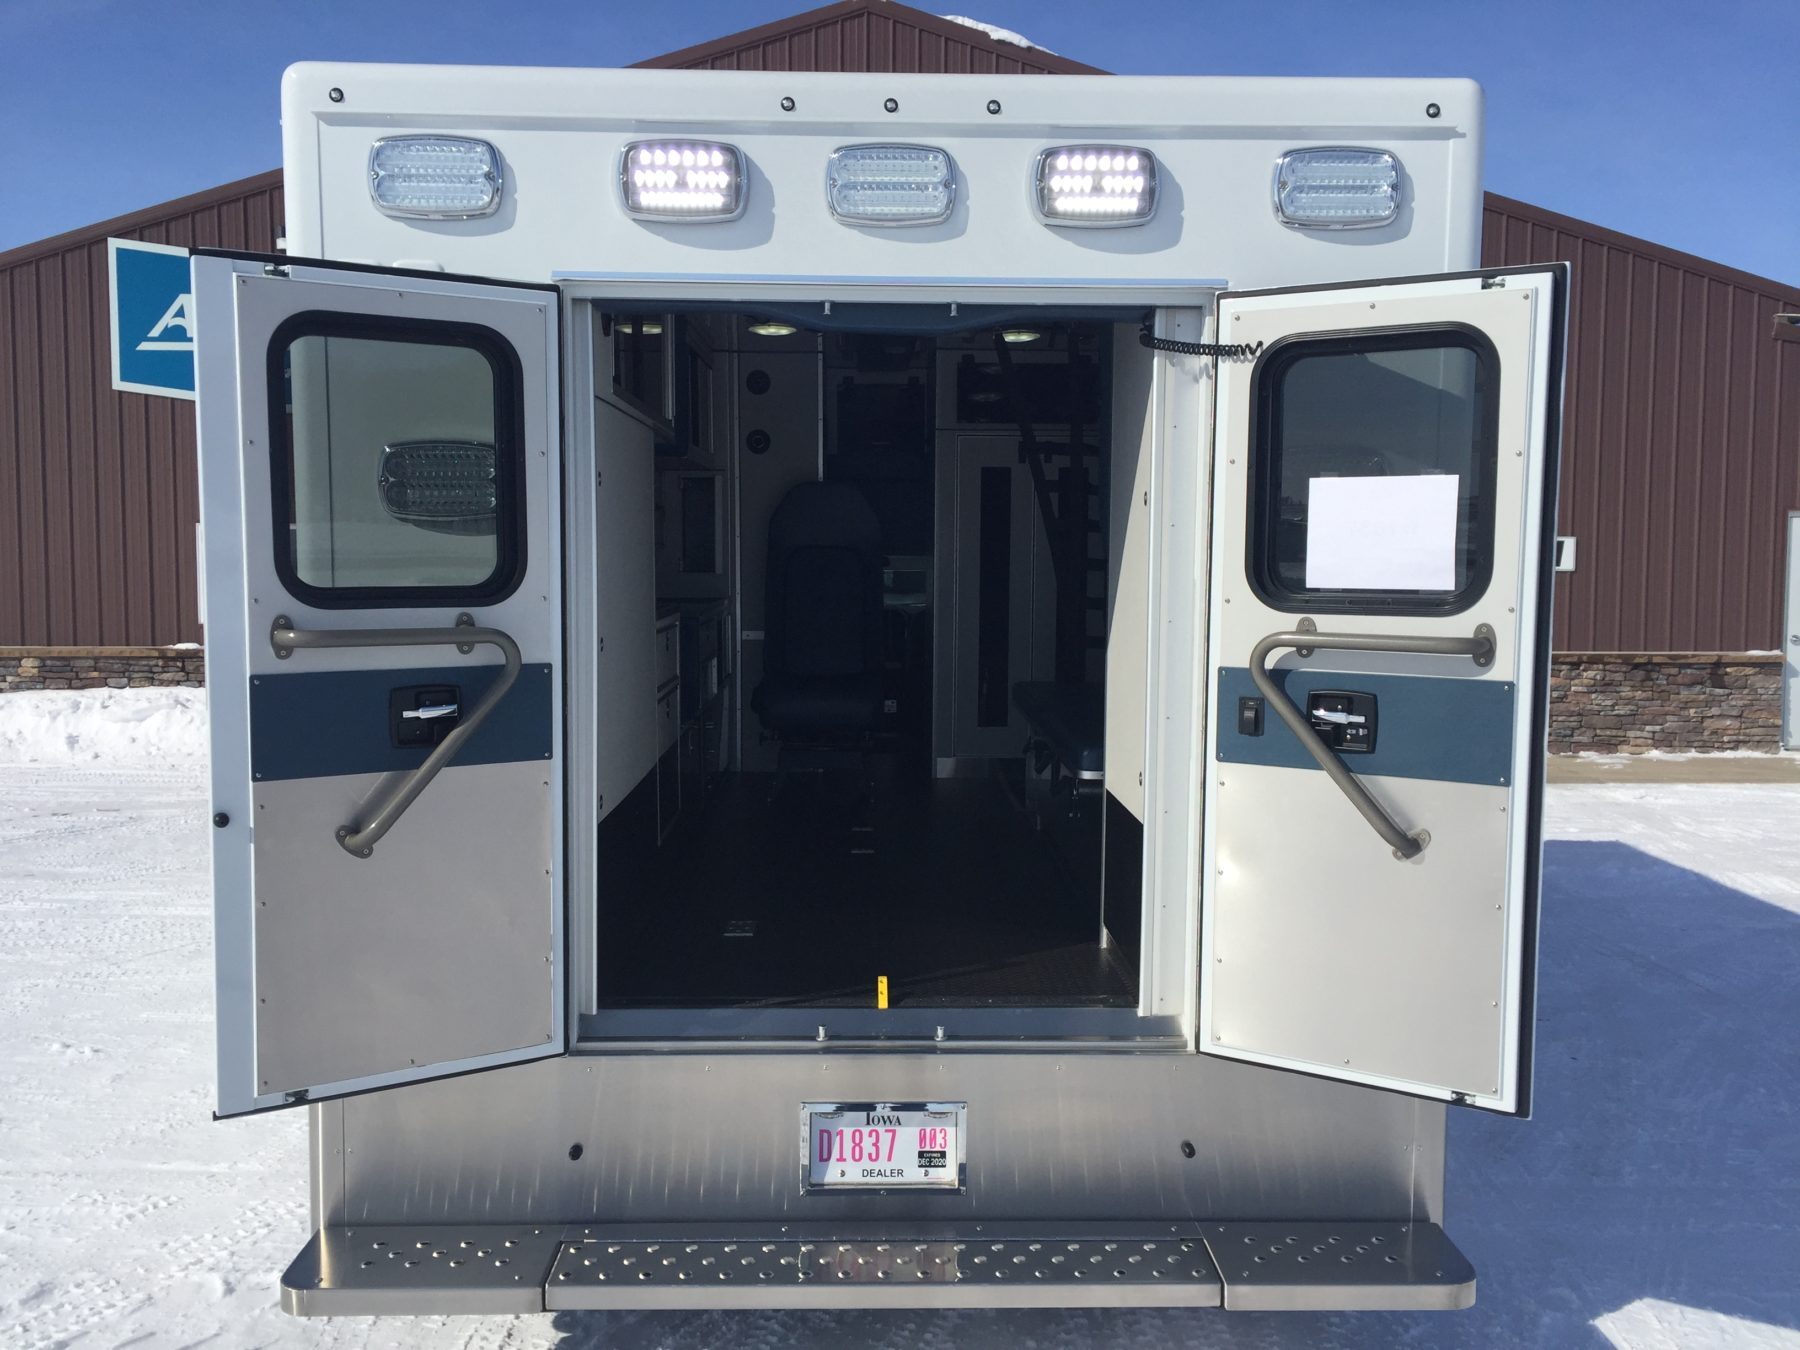 2019 Ford F450 4x4 Heavy Duty Ambulance For Sale – Picture 9